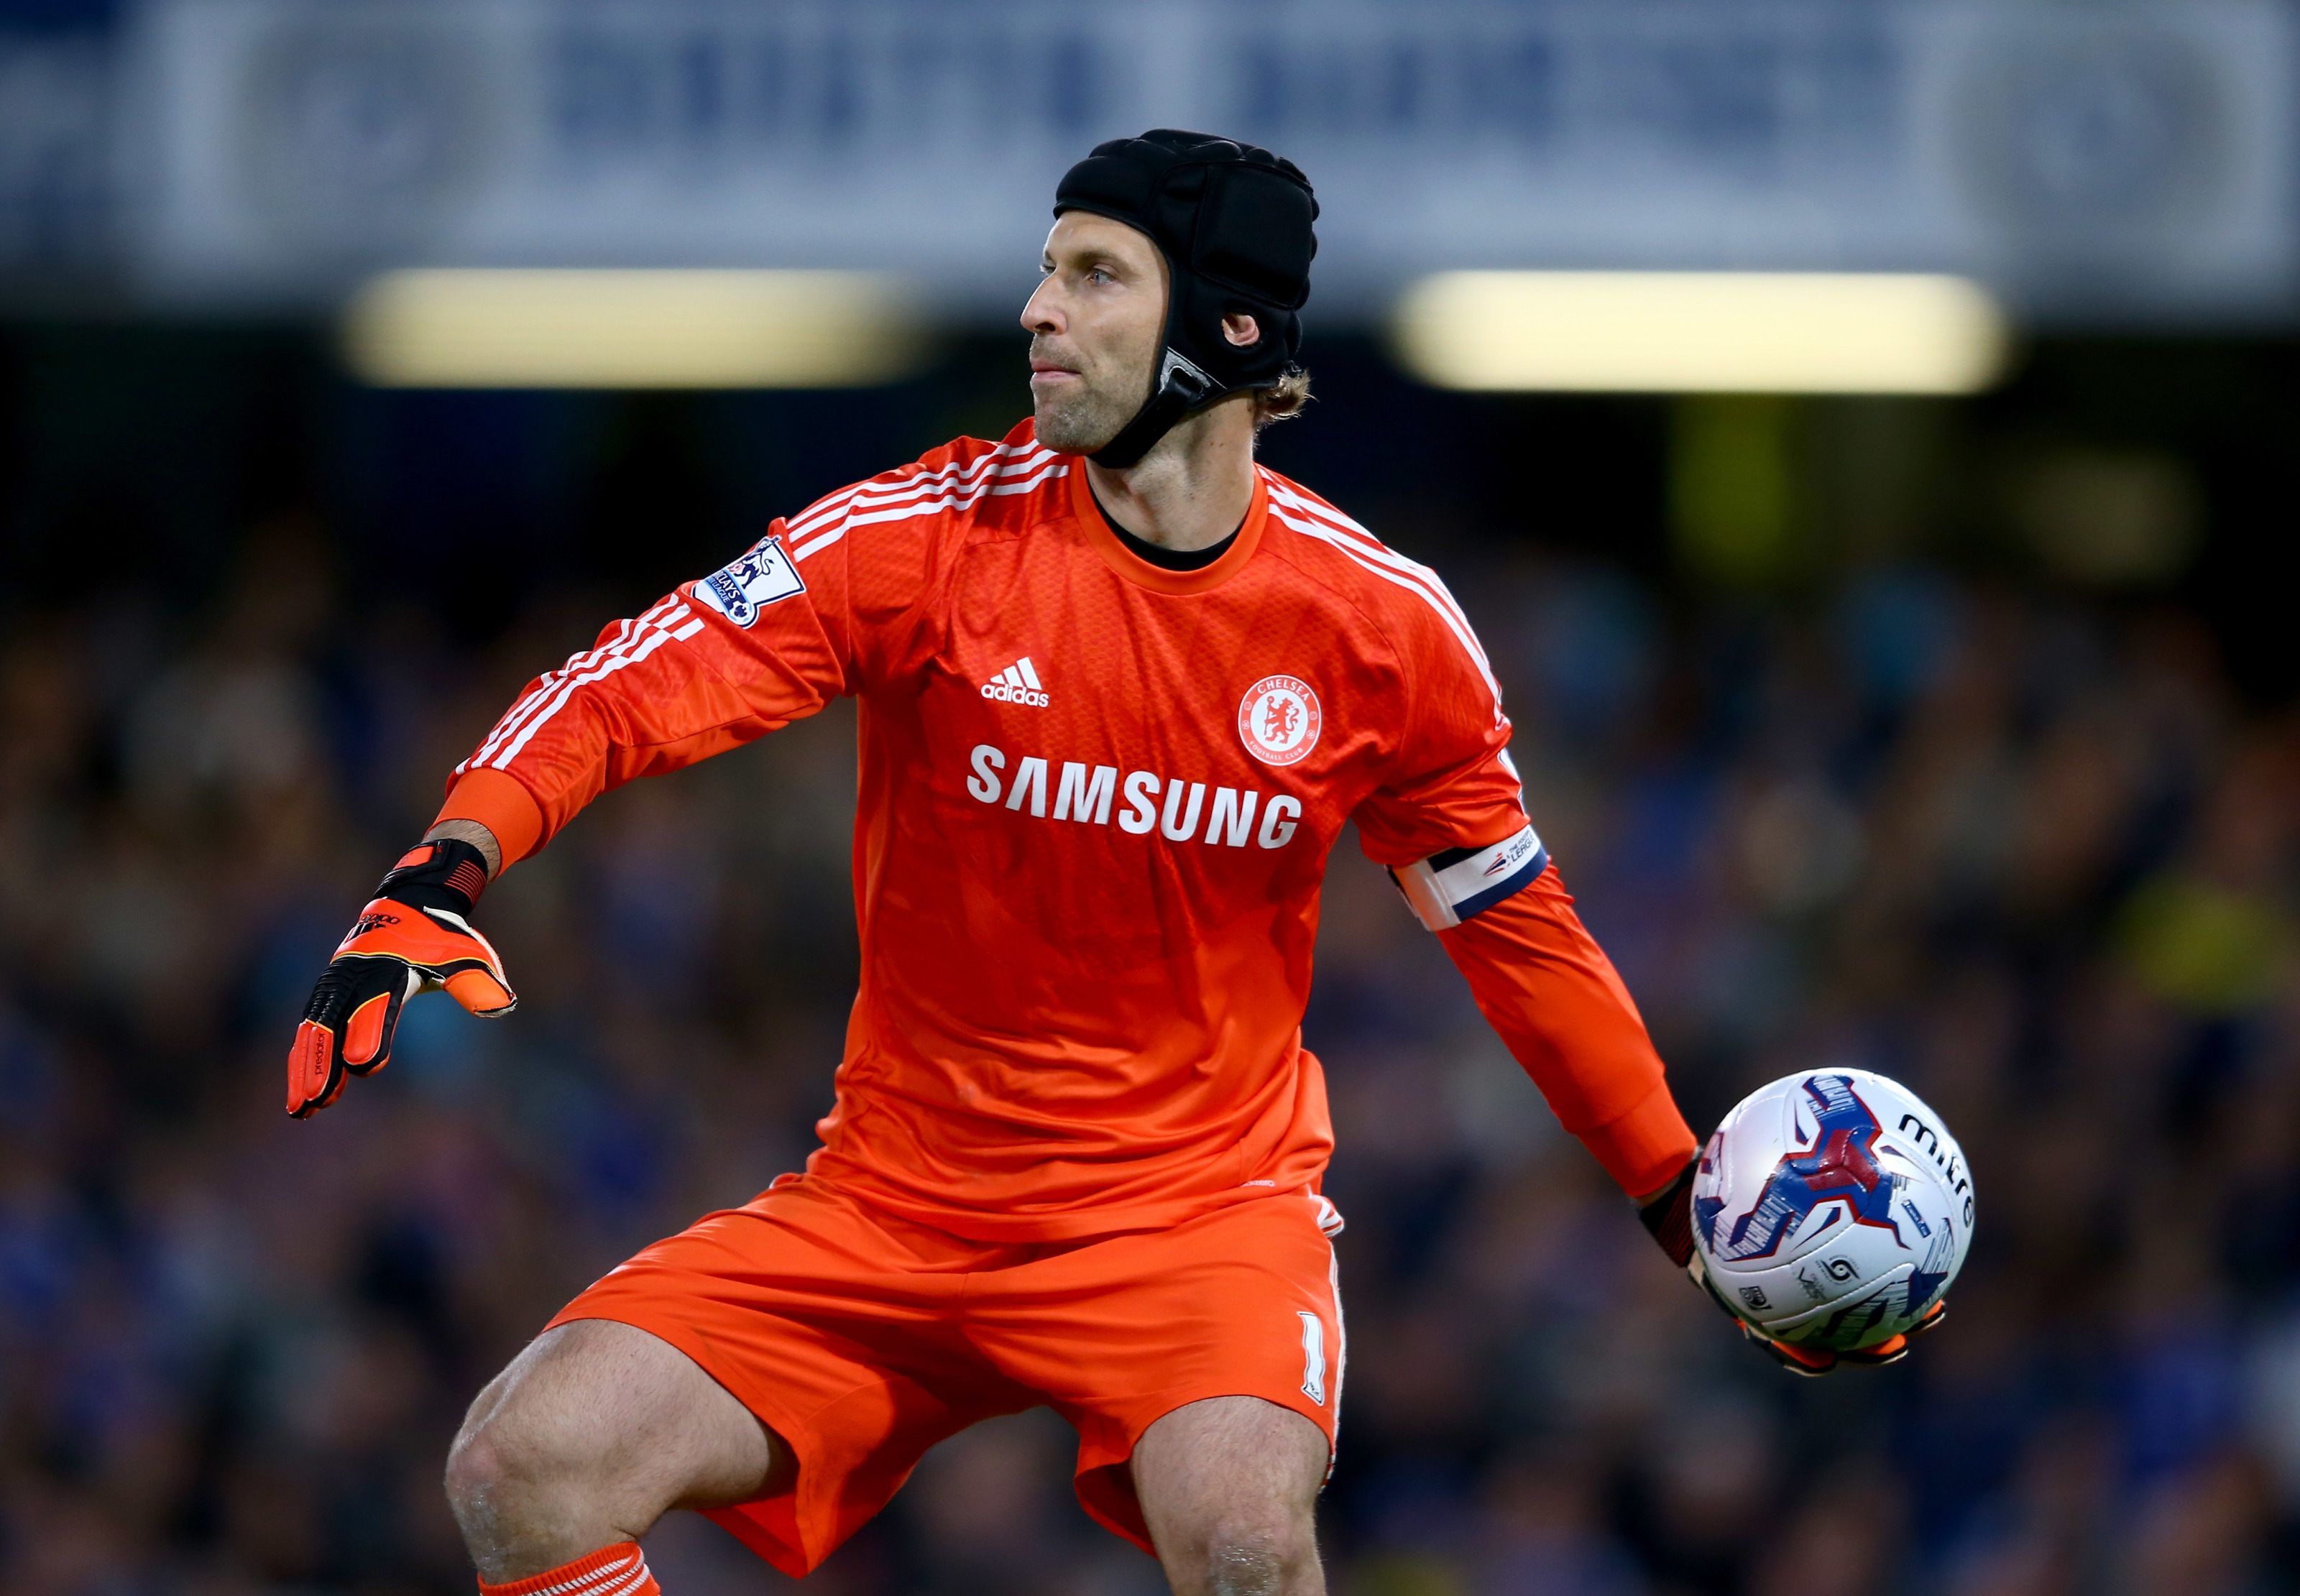 """Chelsea: Petr Cech uniquely suited to be """"custodian of sporting performance"""""""